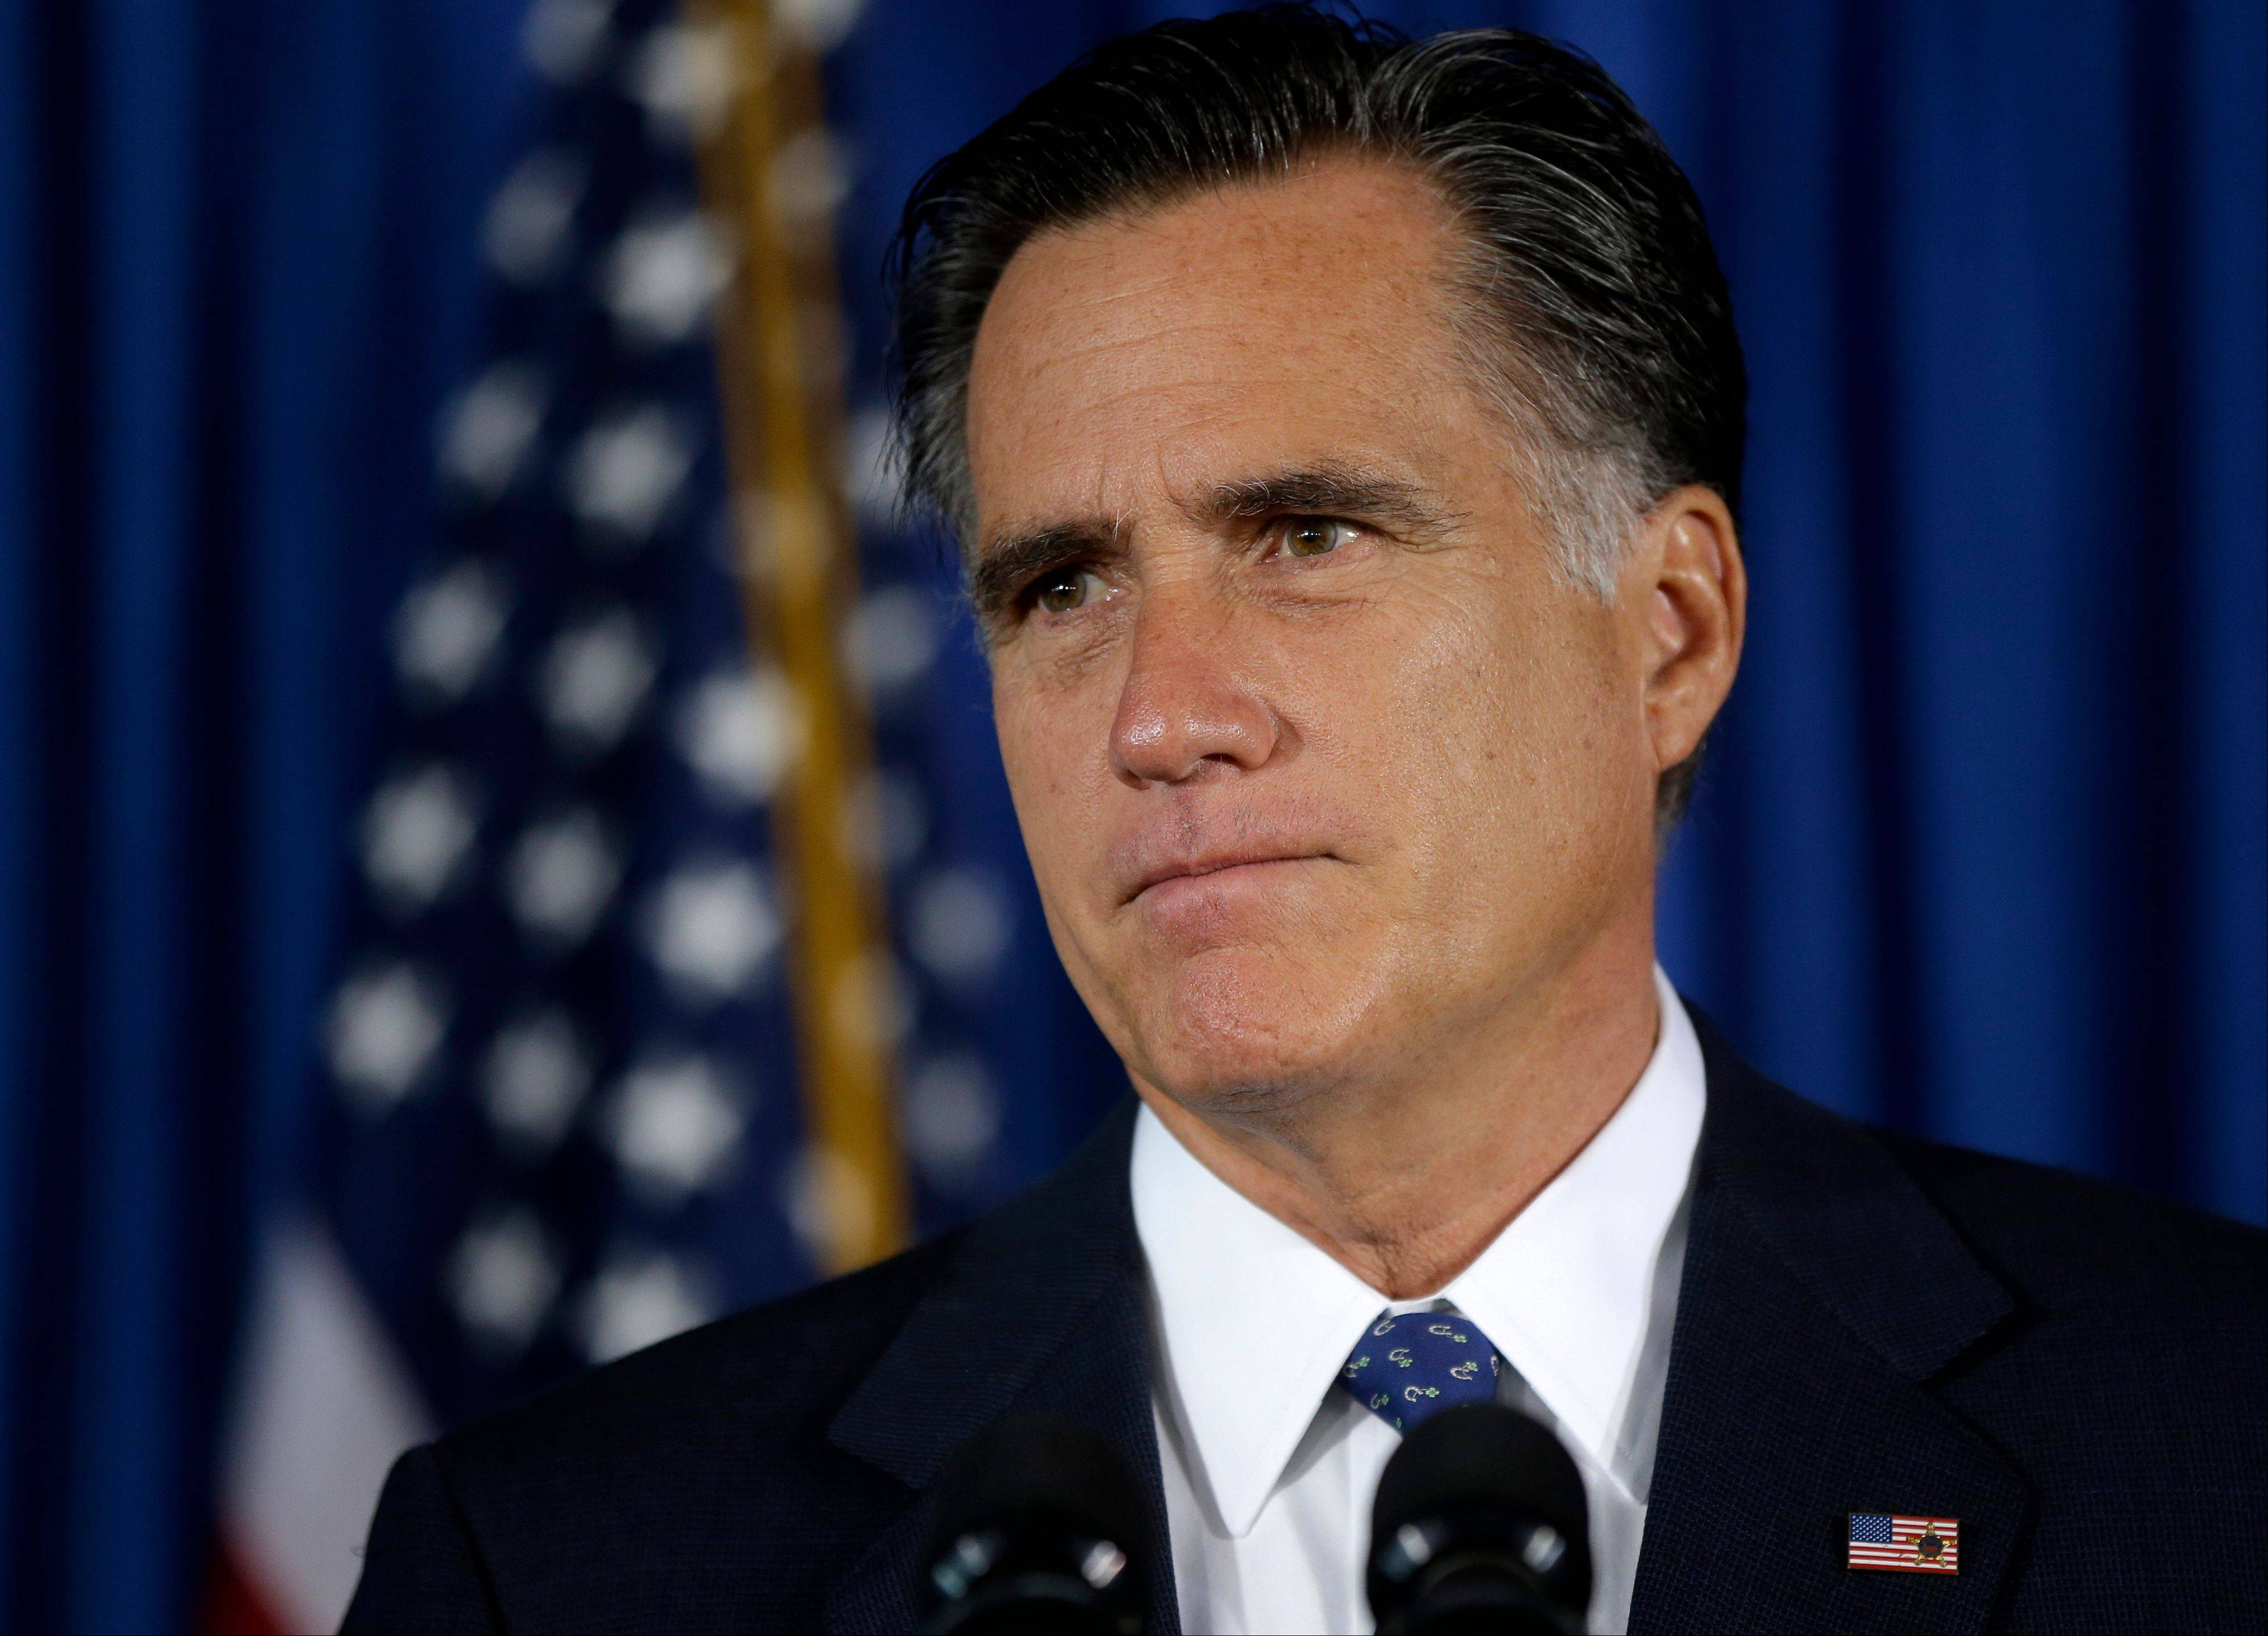 Obama, Romney trade tough words over attacks